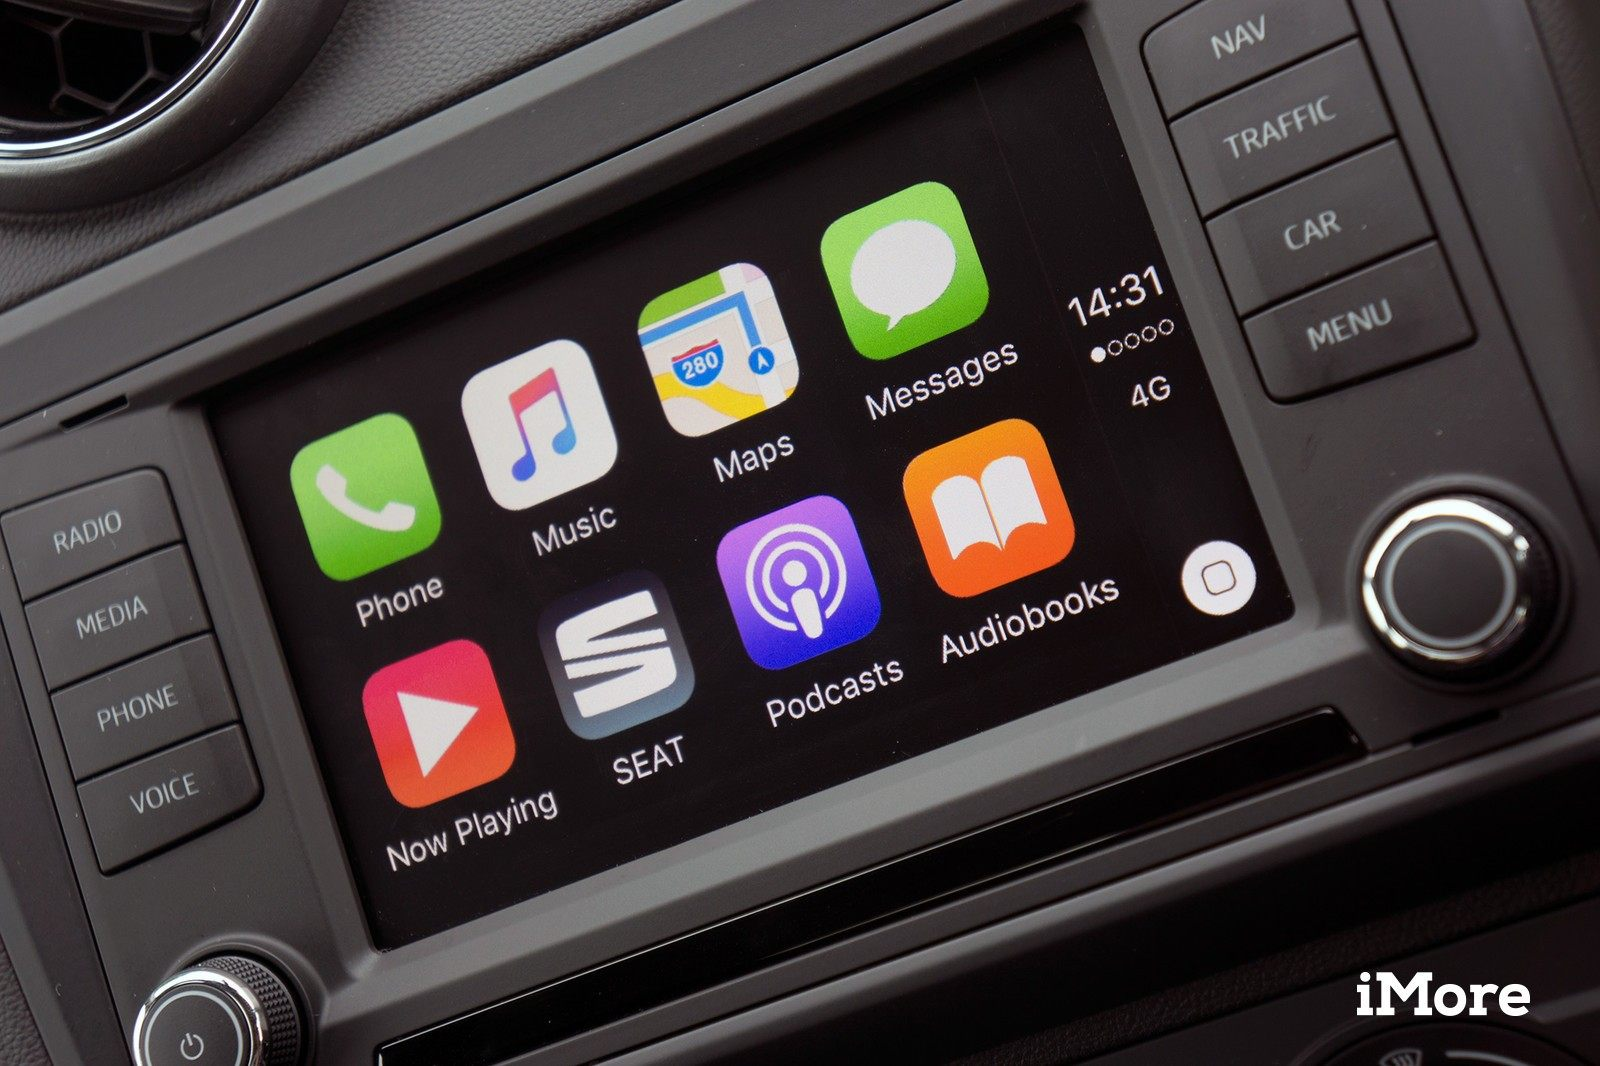 Lit à 2 Places Charmant Here are the Cars that Currently Support Apple Carplay